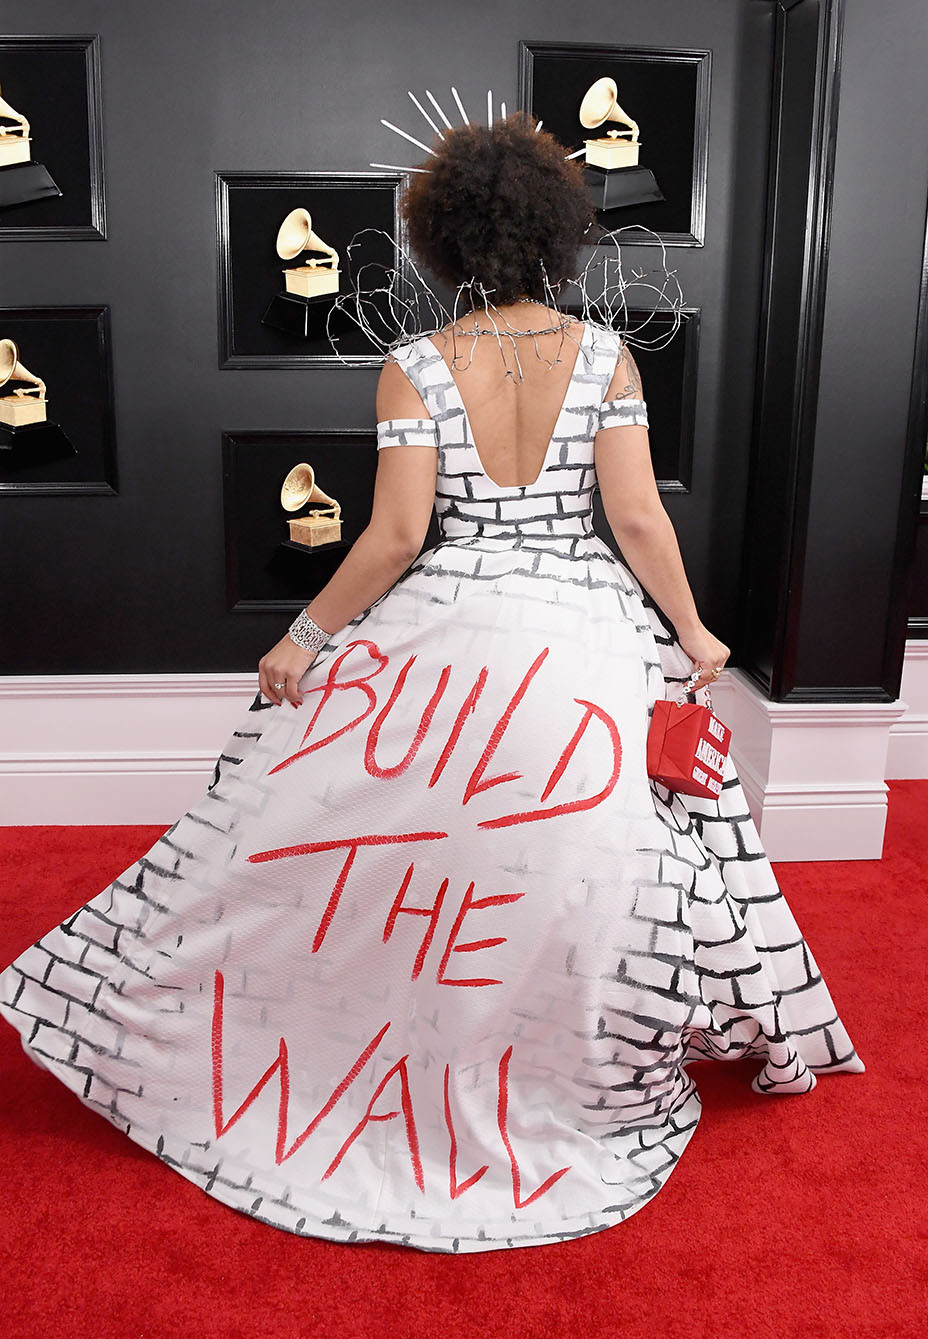 singer shocks in barbed wire build the wall gown on grammys red carpet hollywood reporter barbed wire build the wall gown